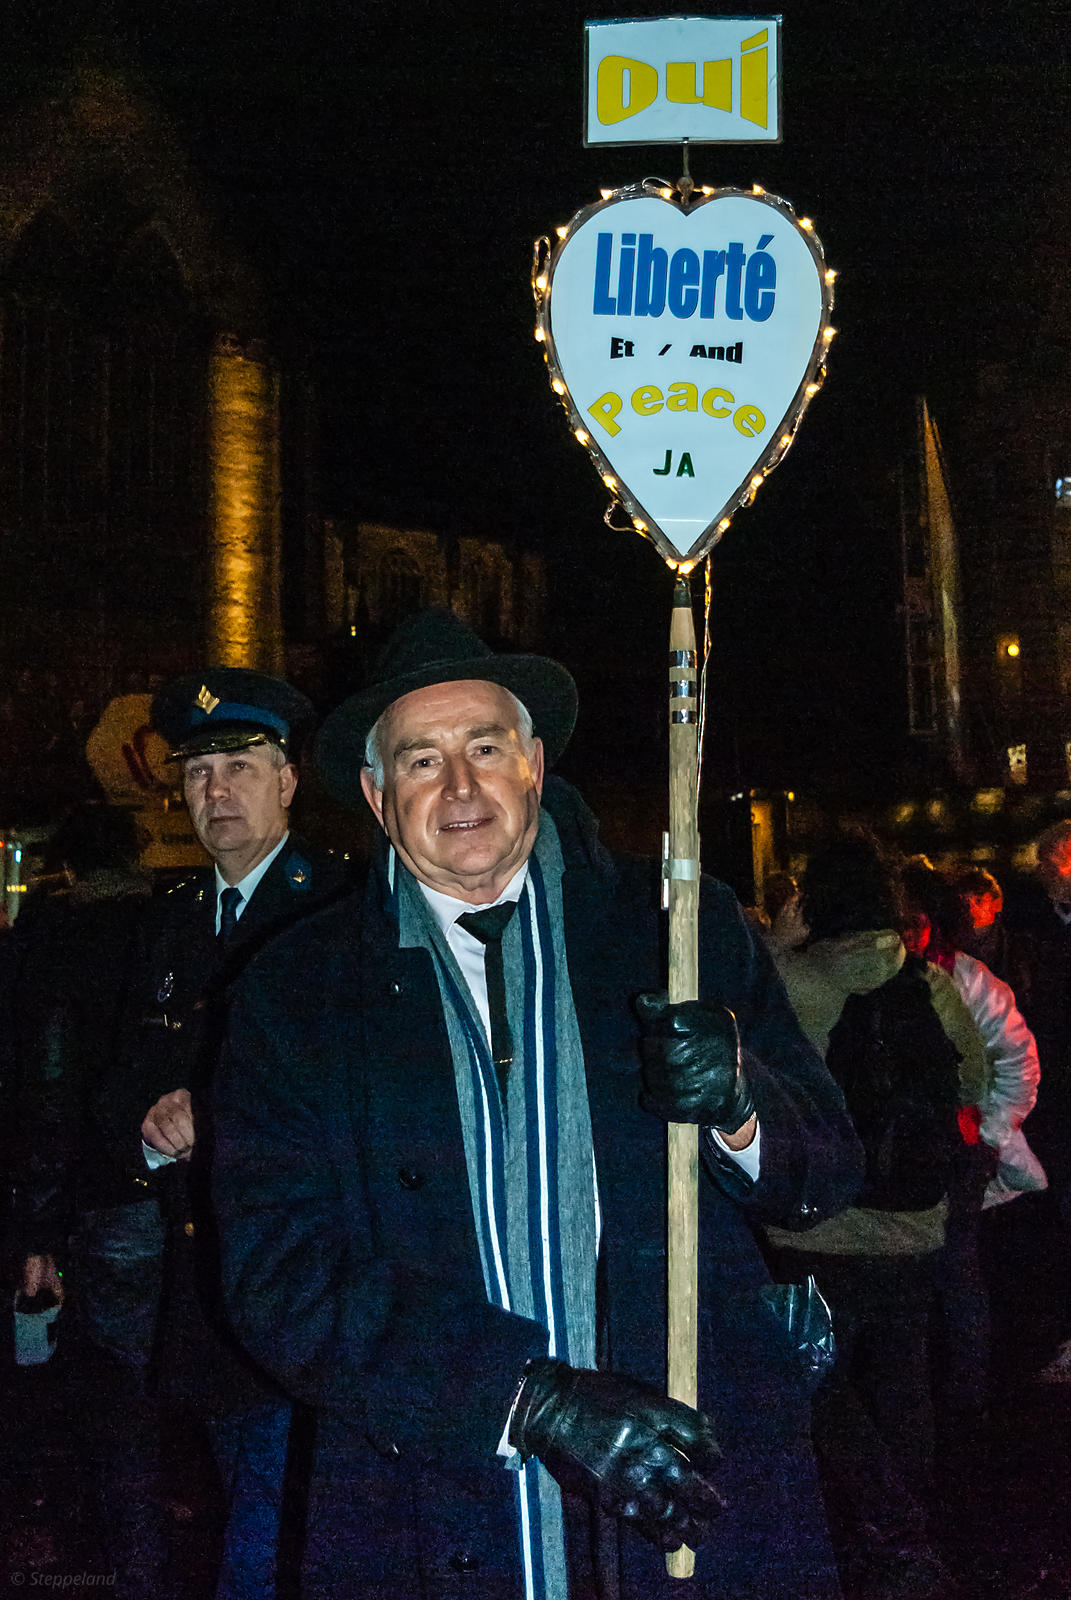 Amsterdam, Netherlands 2015-01-08: Man holding a two-sided sign - YES - side, and the Chief commissioner of Police Amsterdam